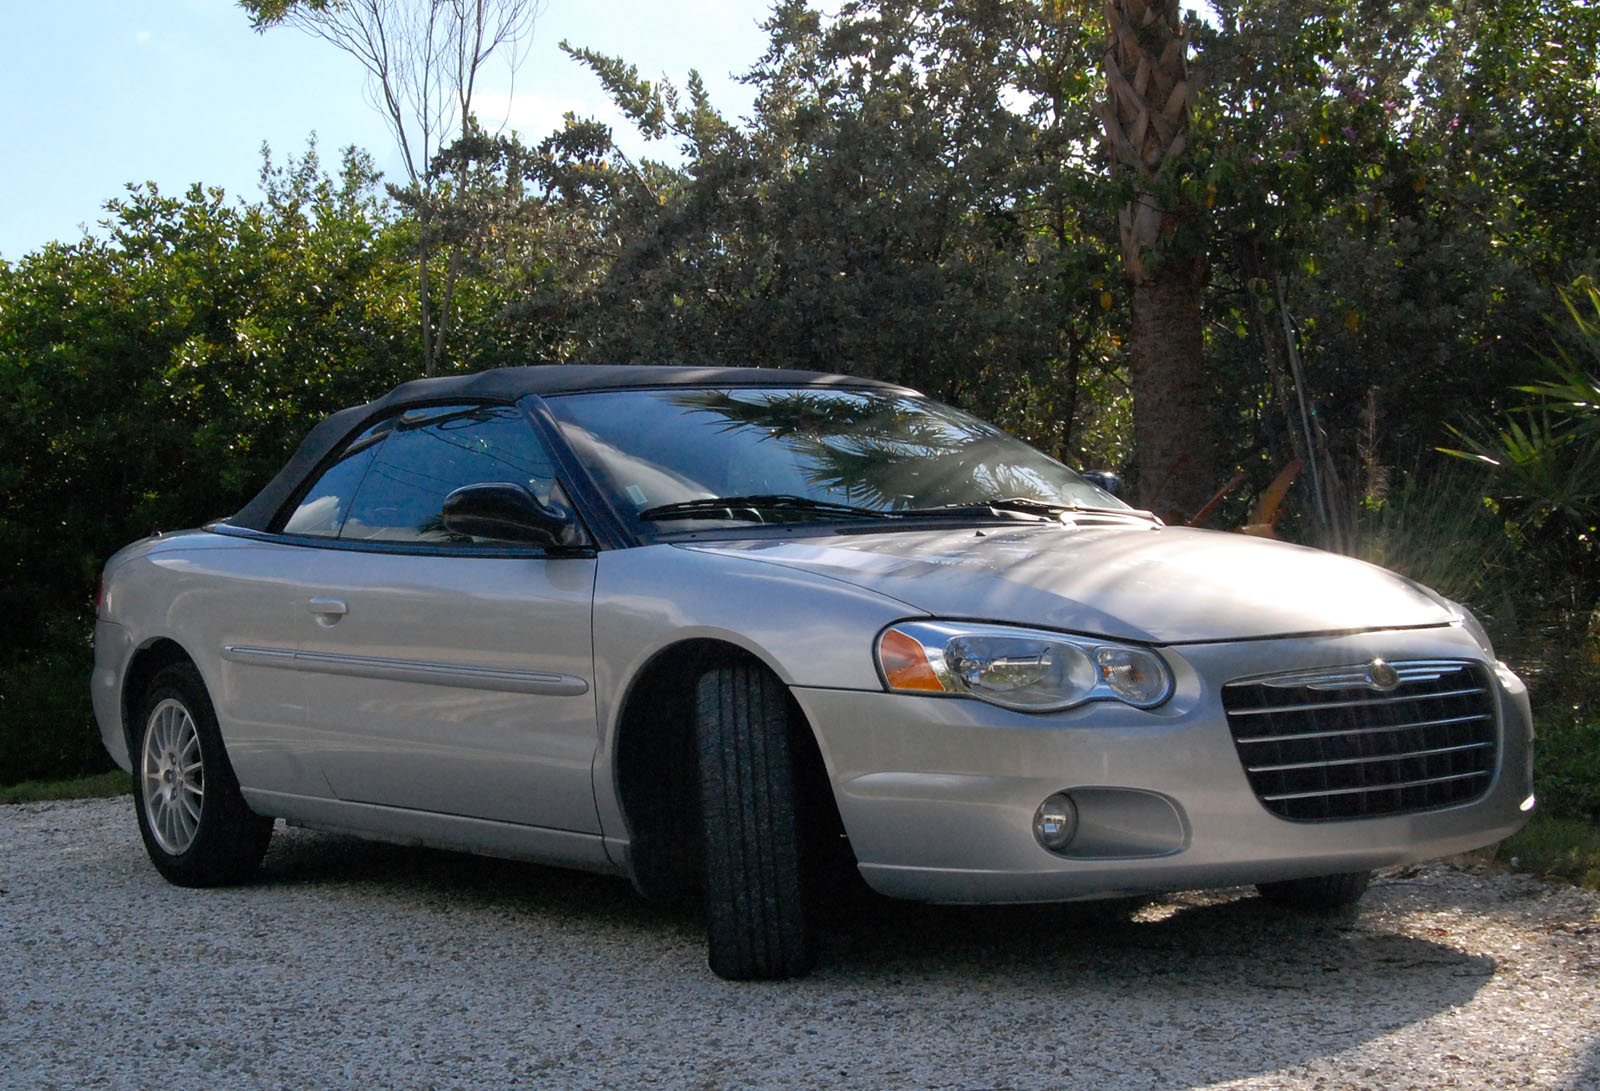 chrysler sebring convertible touring #6